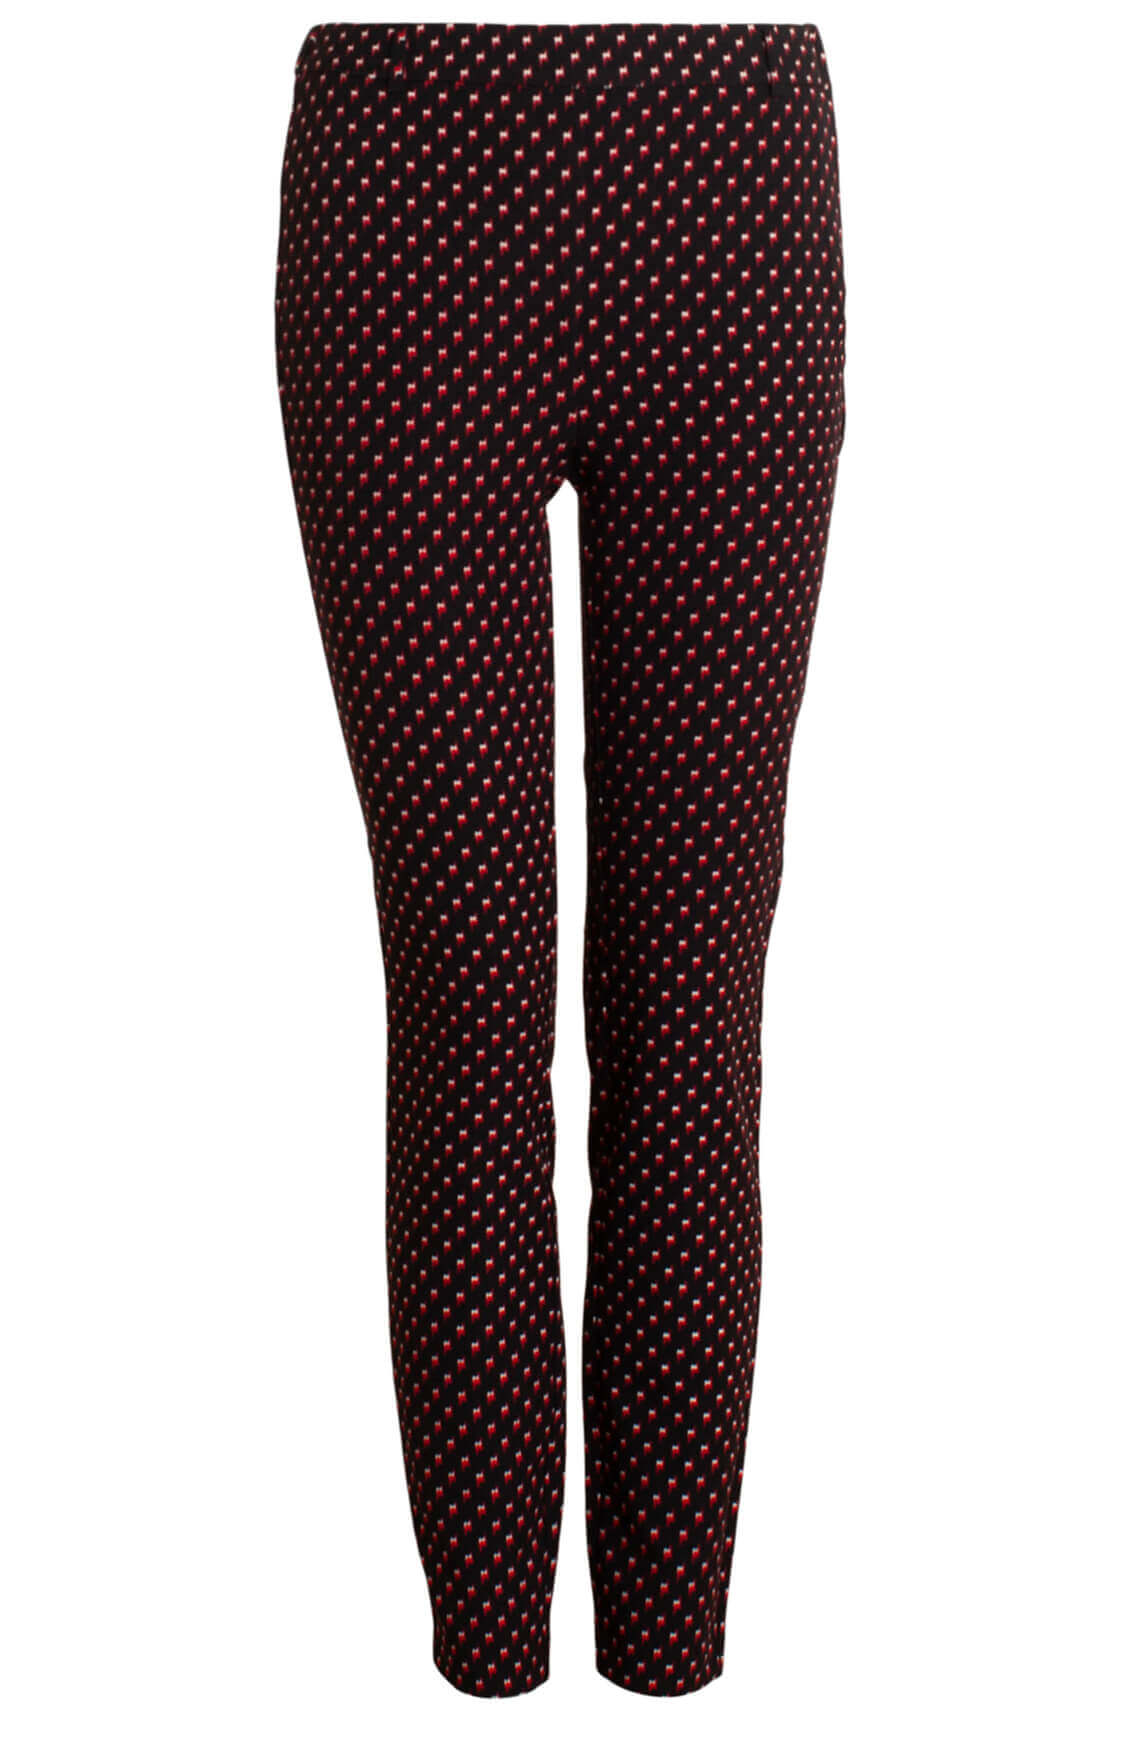 Alix The Label Dames Pantalon met bliksemprint zwart